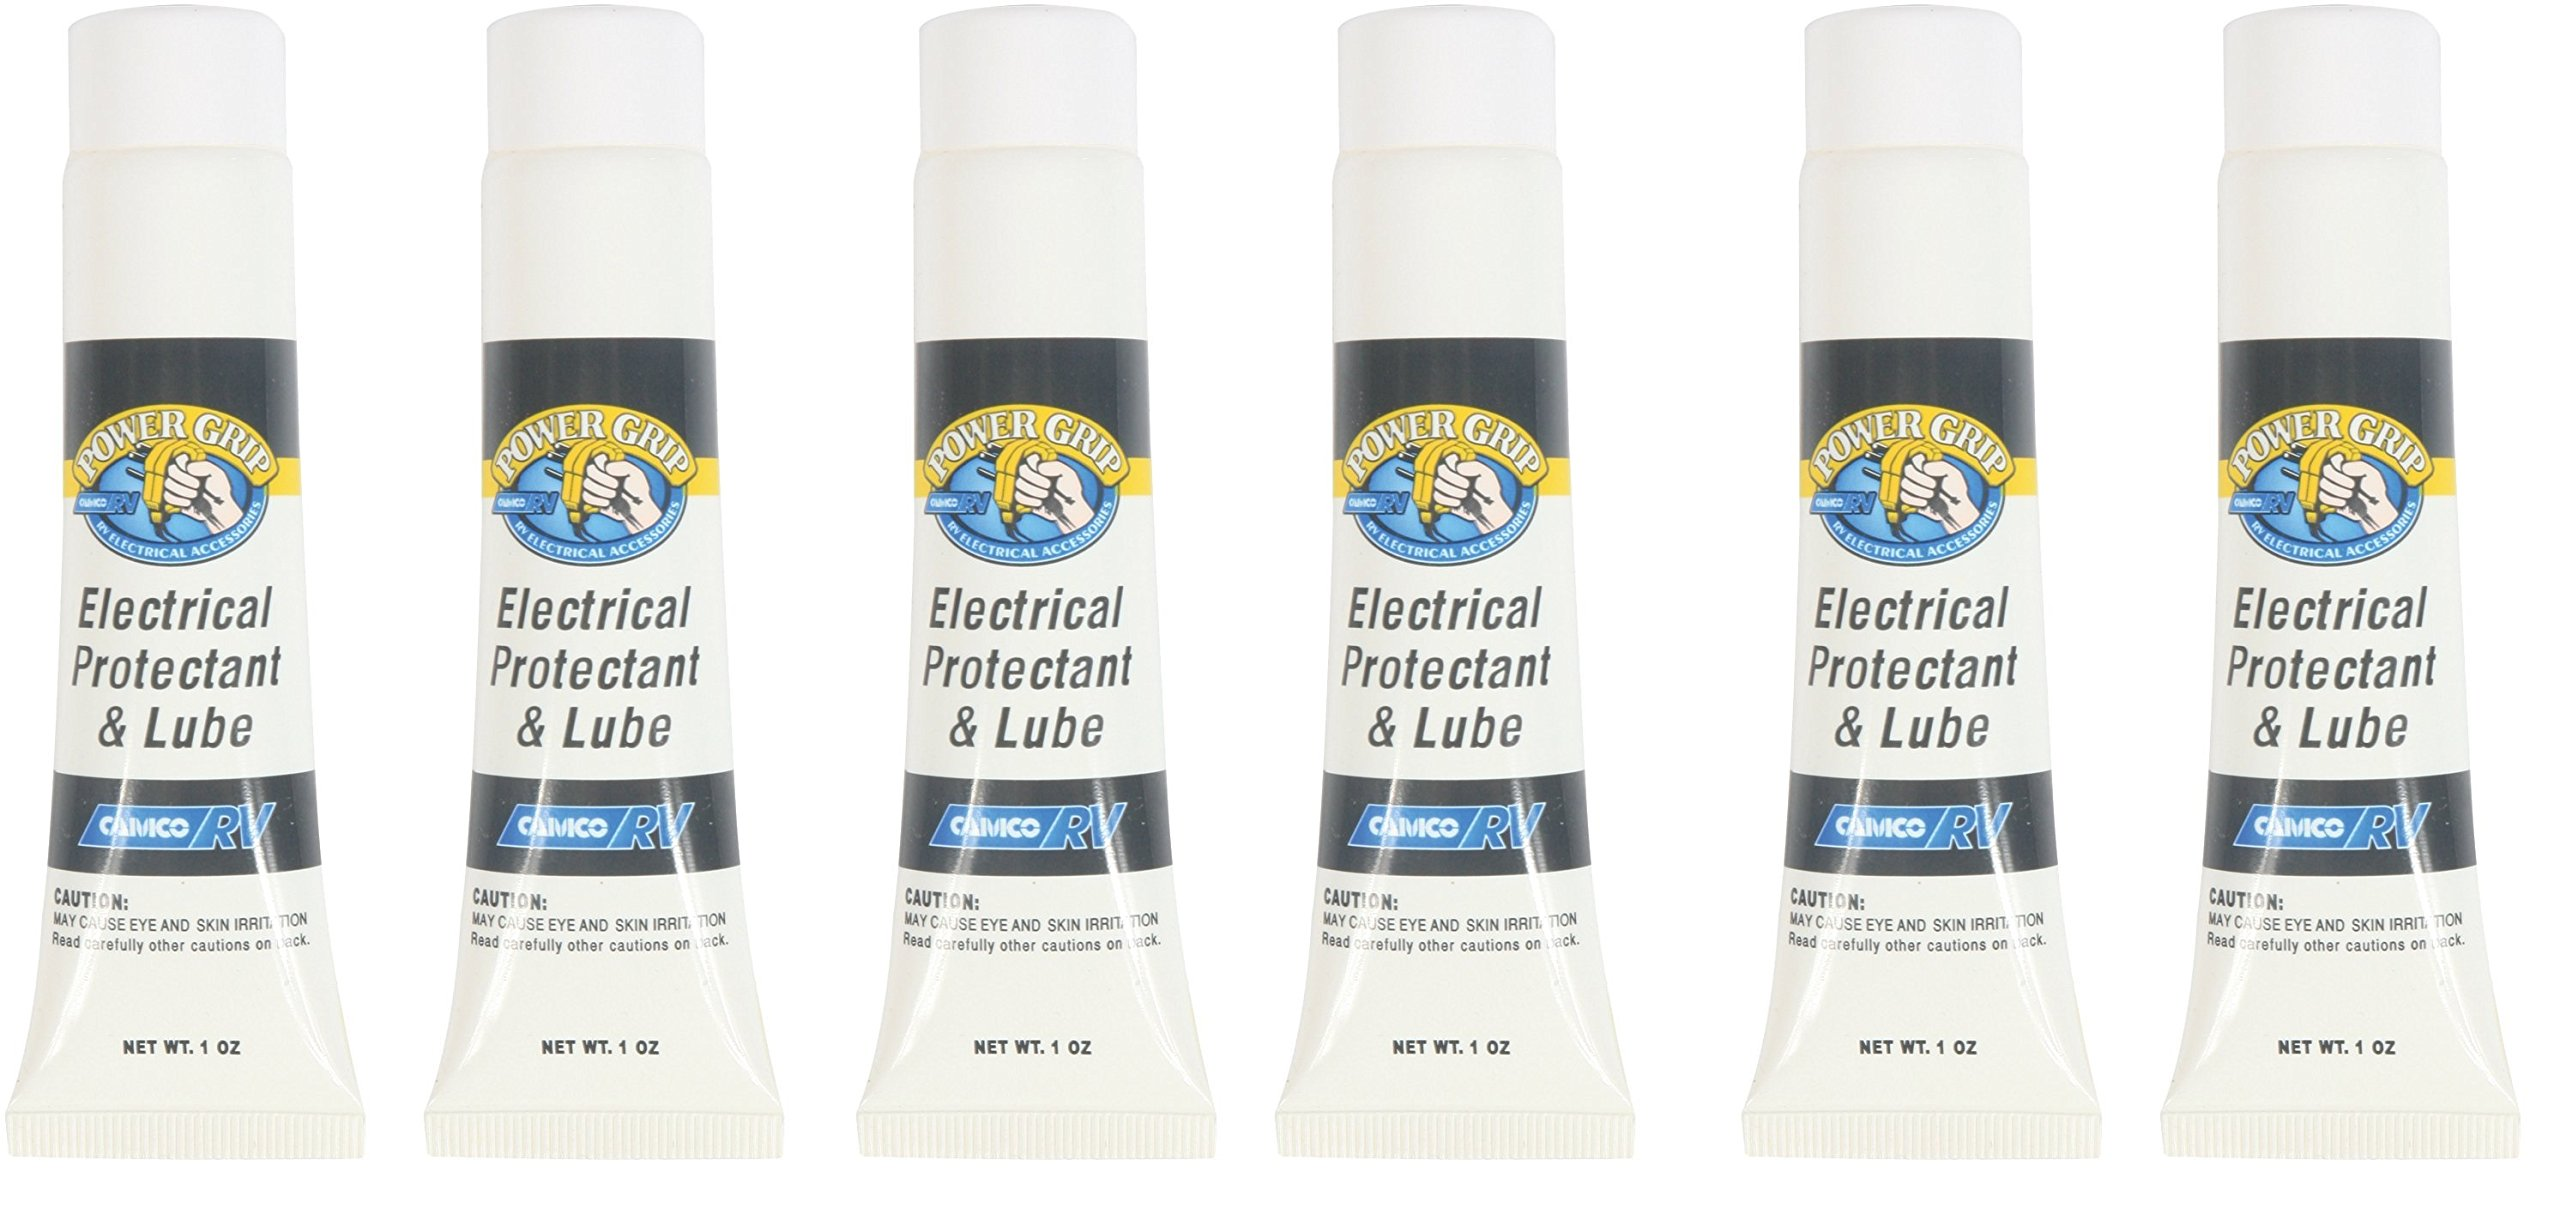 CAMCO ® 55013 PowerGrip Electrical Protectant and Lube - 1 oz (6)